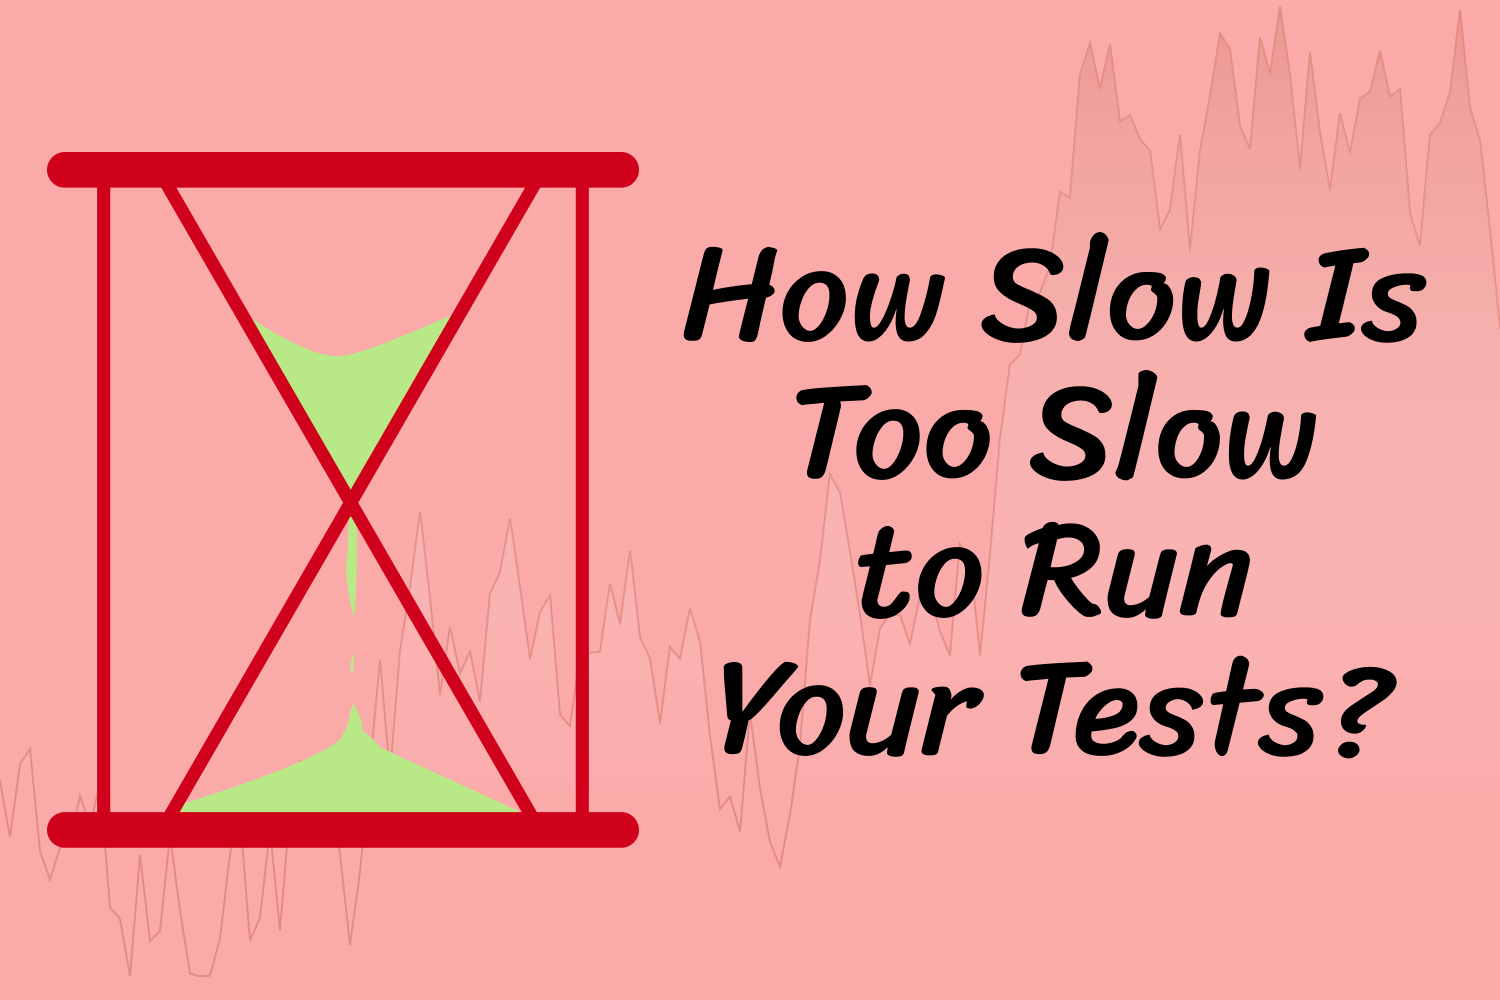 How Slow Is Too Slow to Run Your Tests?